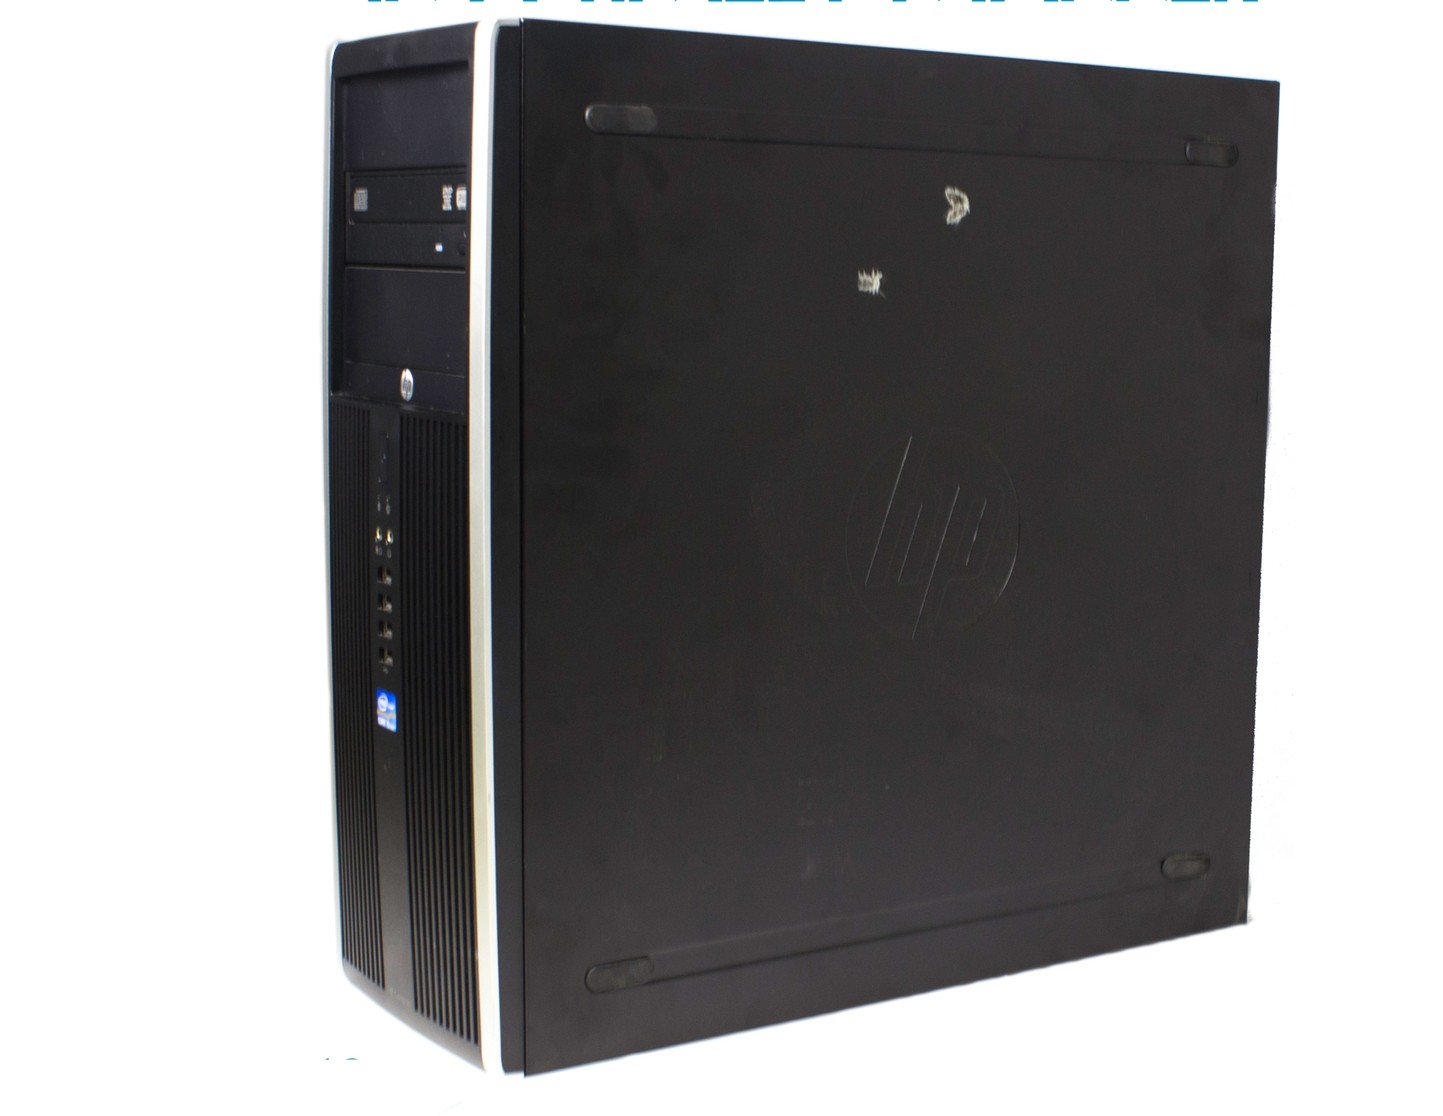 HP-COM-ELITE-8300-CMT-i7-HP Compaq Elite 8300 CMT Intel Core i7 8 GB RAM NO HDD Windows 10 Pro-image